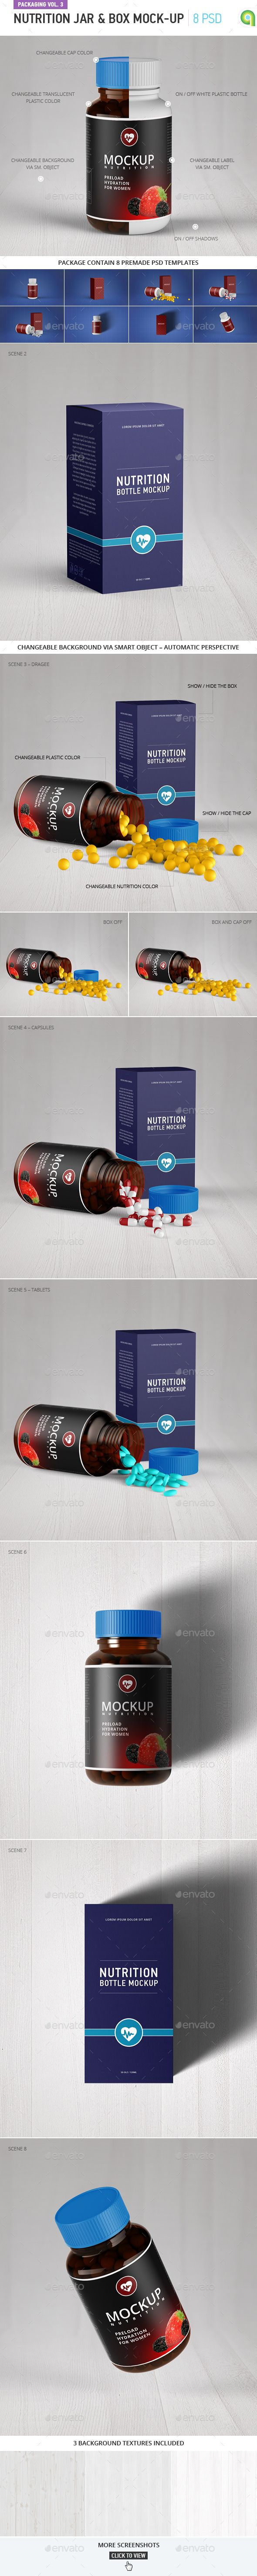 Nutrition jar and box mock-up  — PSD Template #mockup #flask #packaging mock-up…